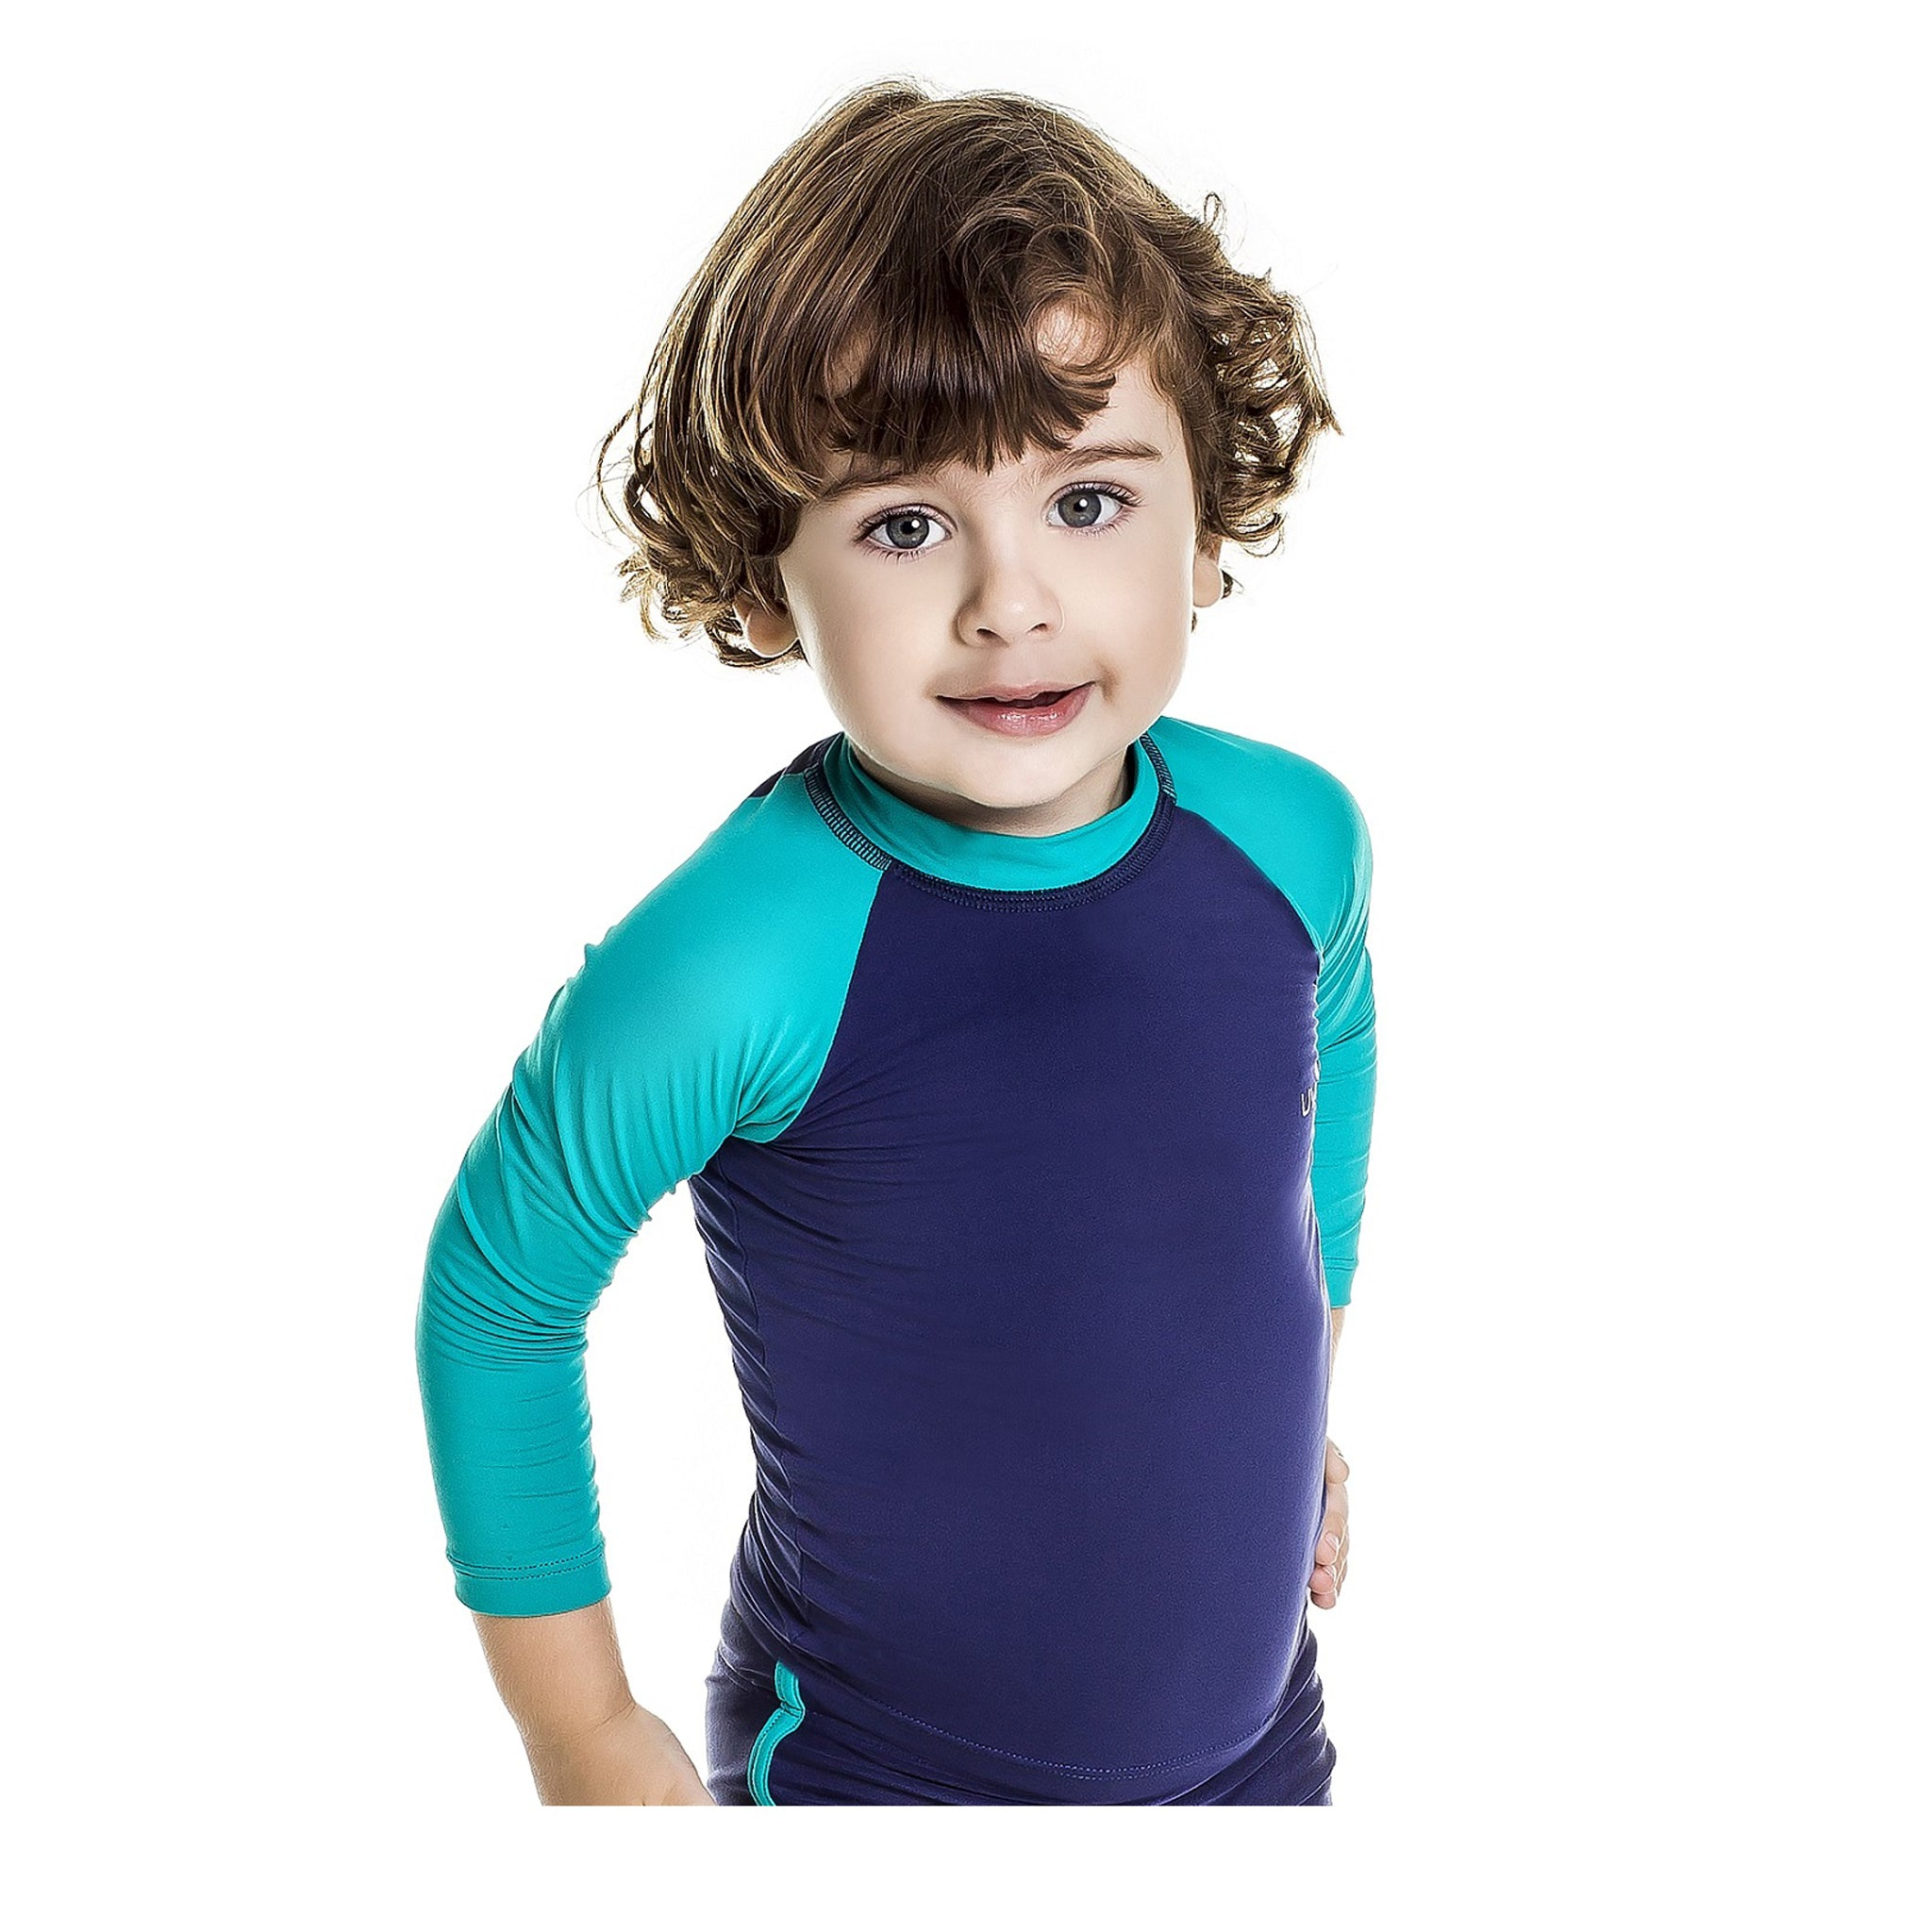 UV SOLAR Boy's rash guard UPF 50+ - Diva Brazilian Swimwear Collection